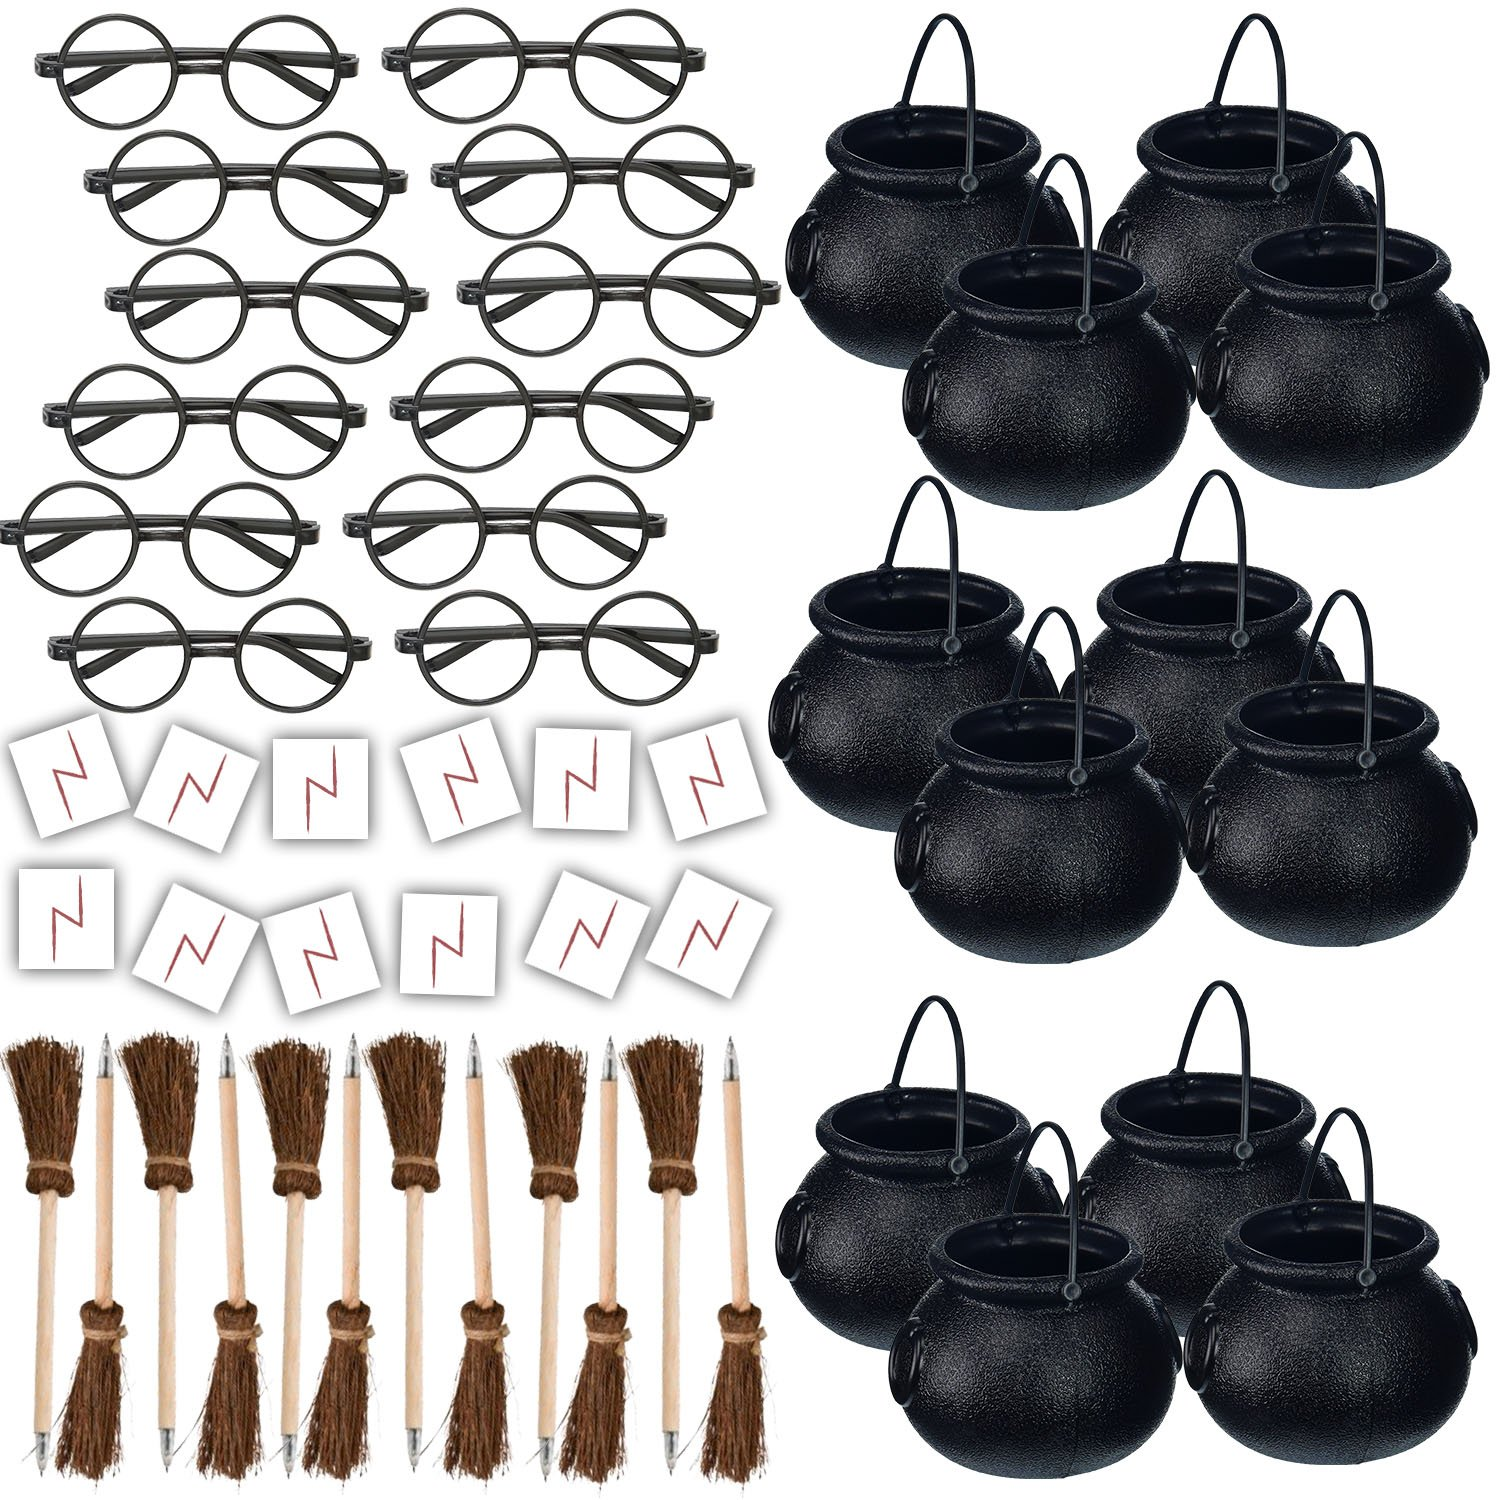 HeroFiber Wizard Party Favors for 12 - Includes Broom Pens, Cauldron, Glasses, and Lightning Scar Tattoos - Perfect for a Wizard School Theme Birthday Party (12 of each)